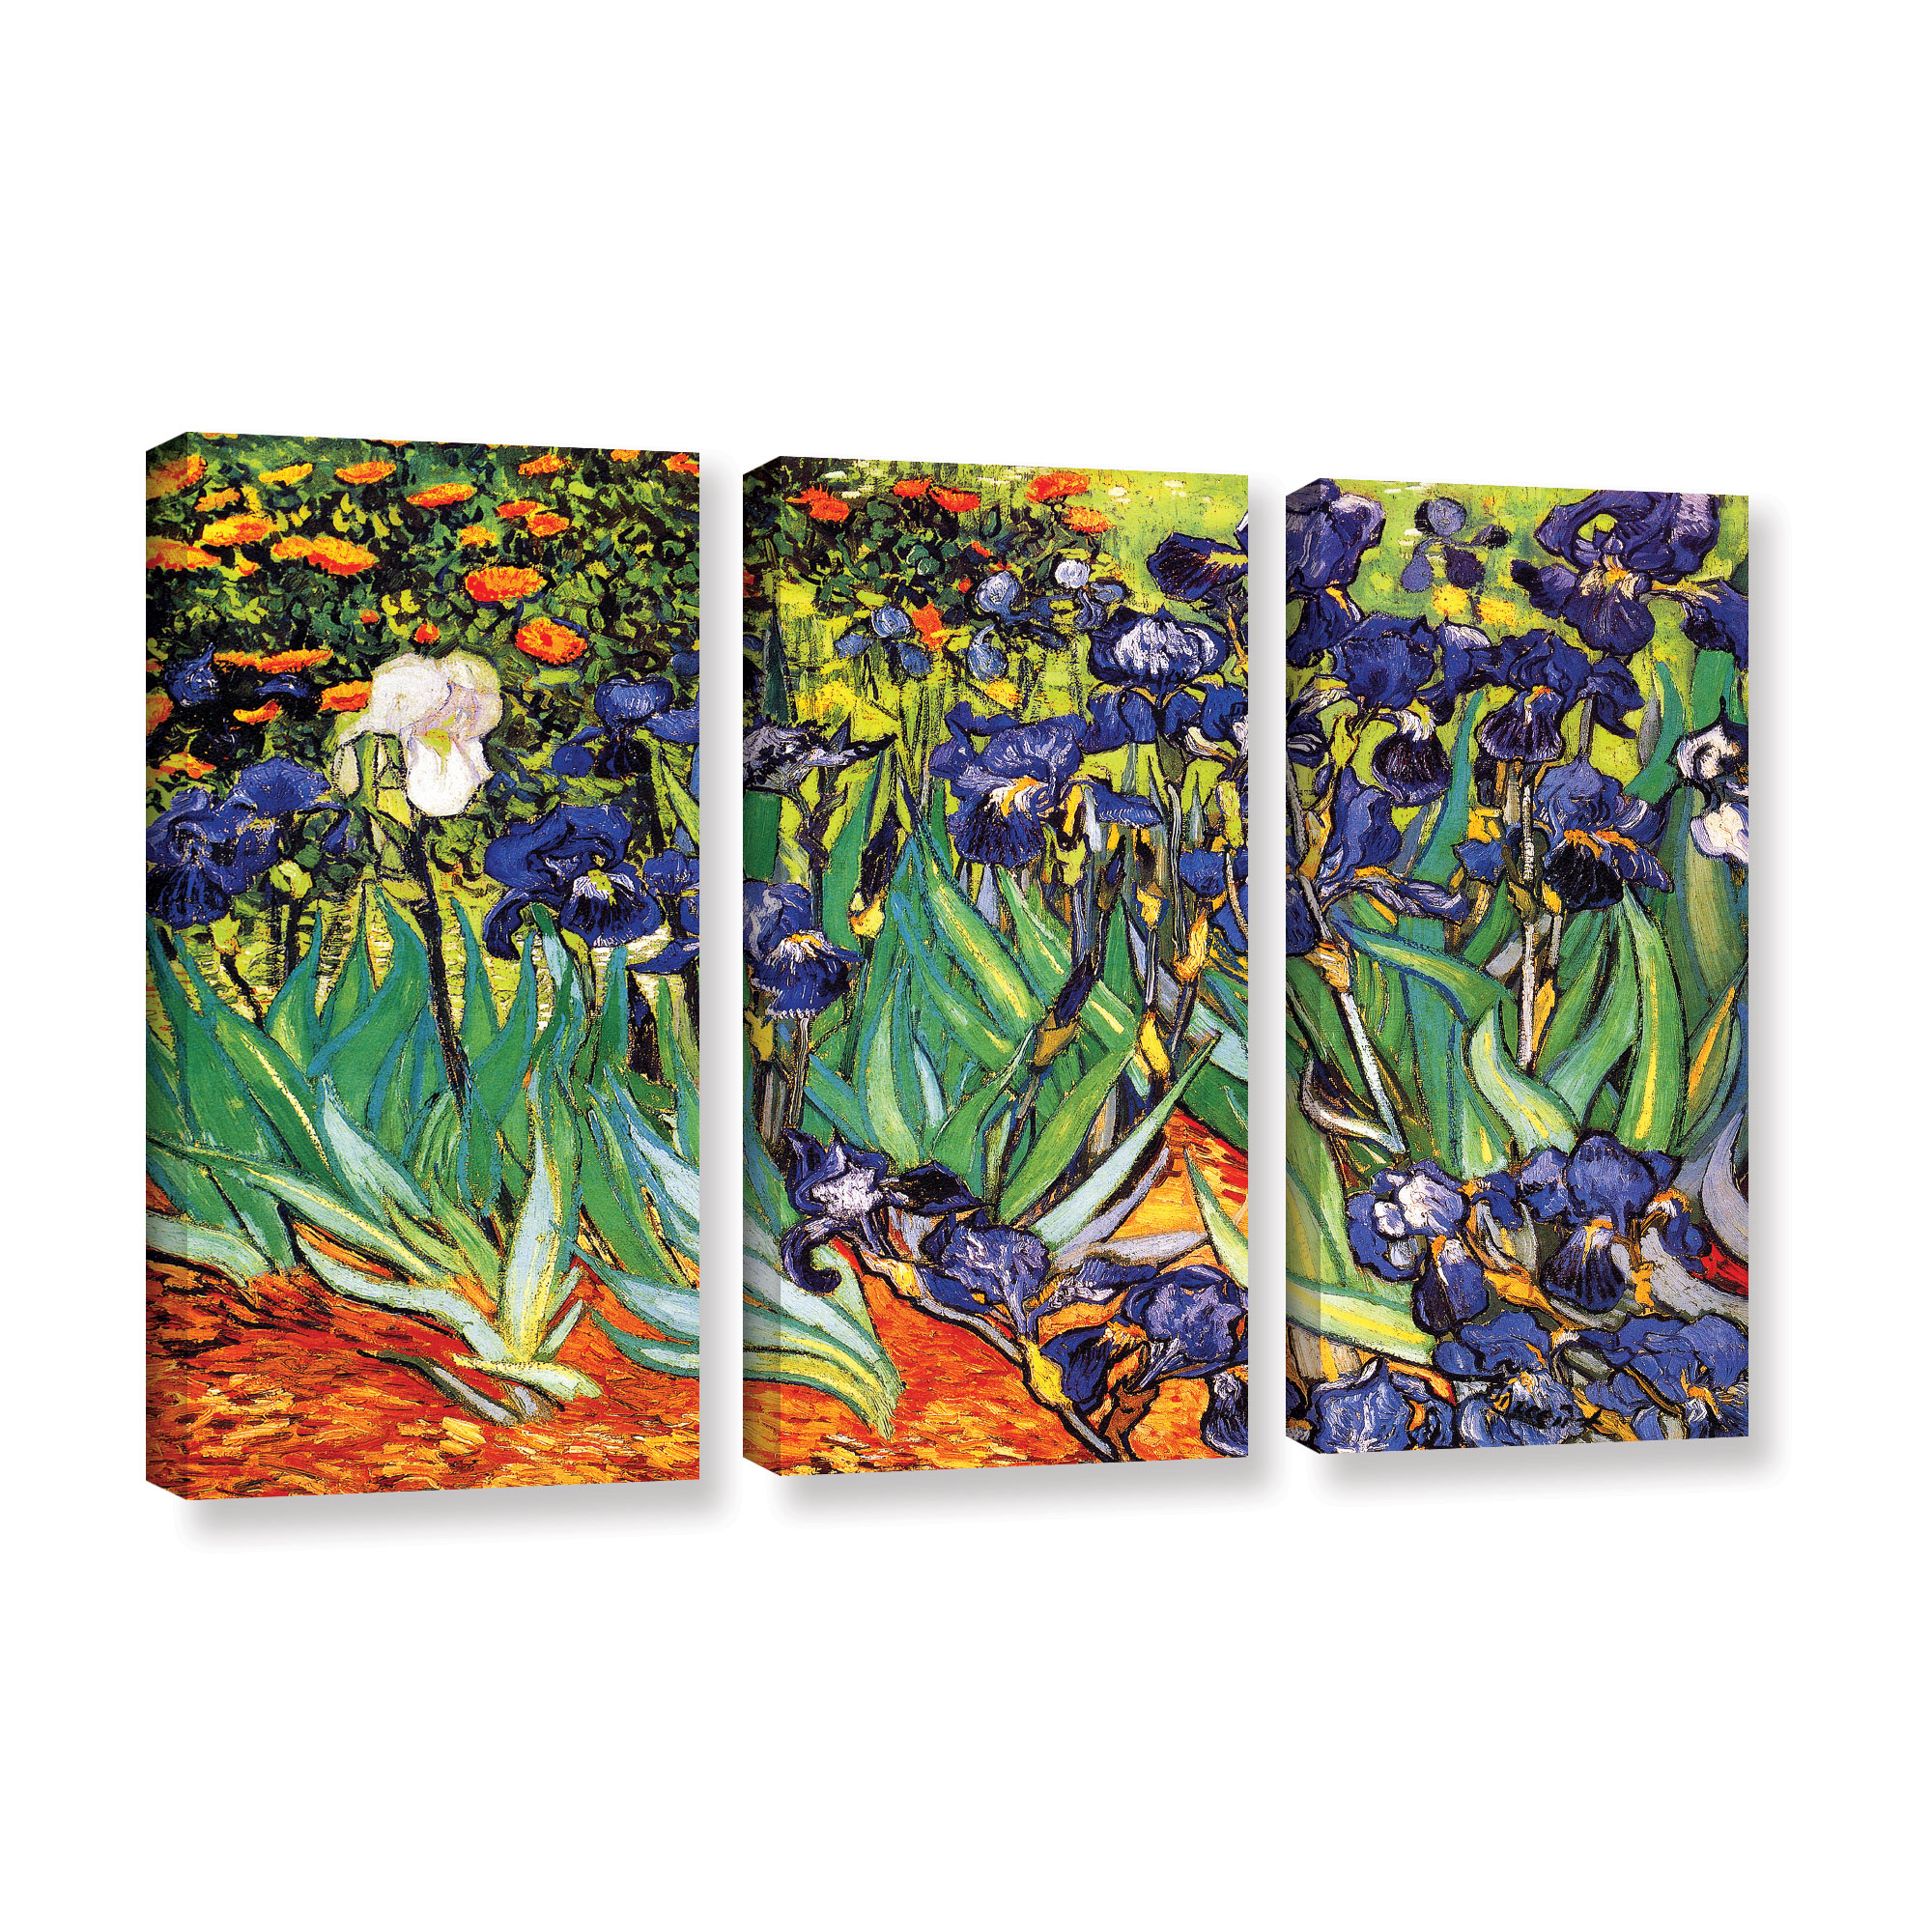 Irises in the Garden' Gallery wrapped Canvas Art Print